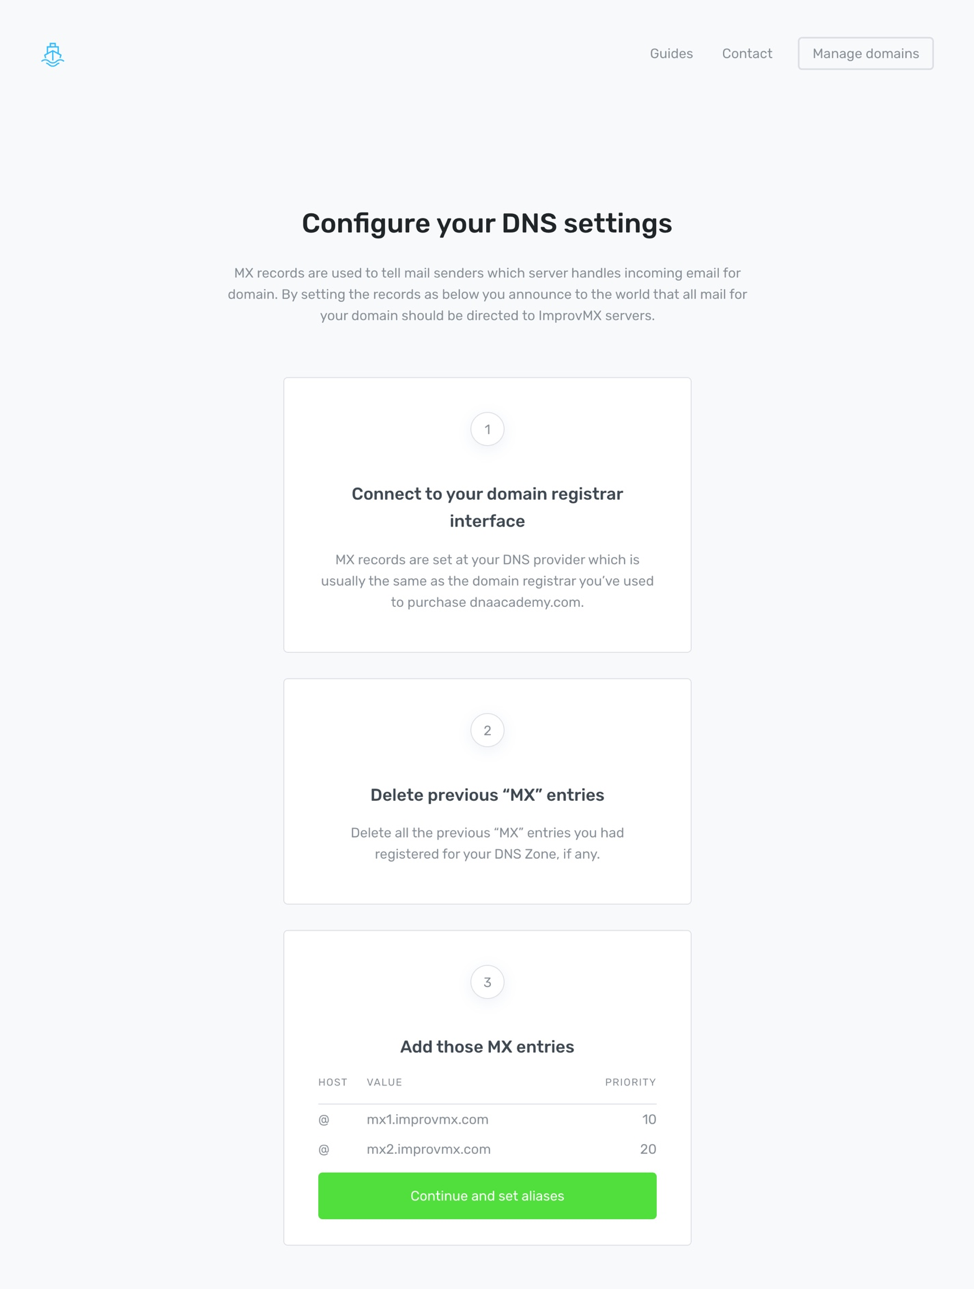 Configure DNS settings for your catch-all emails